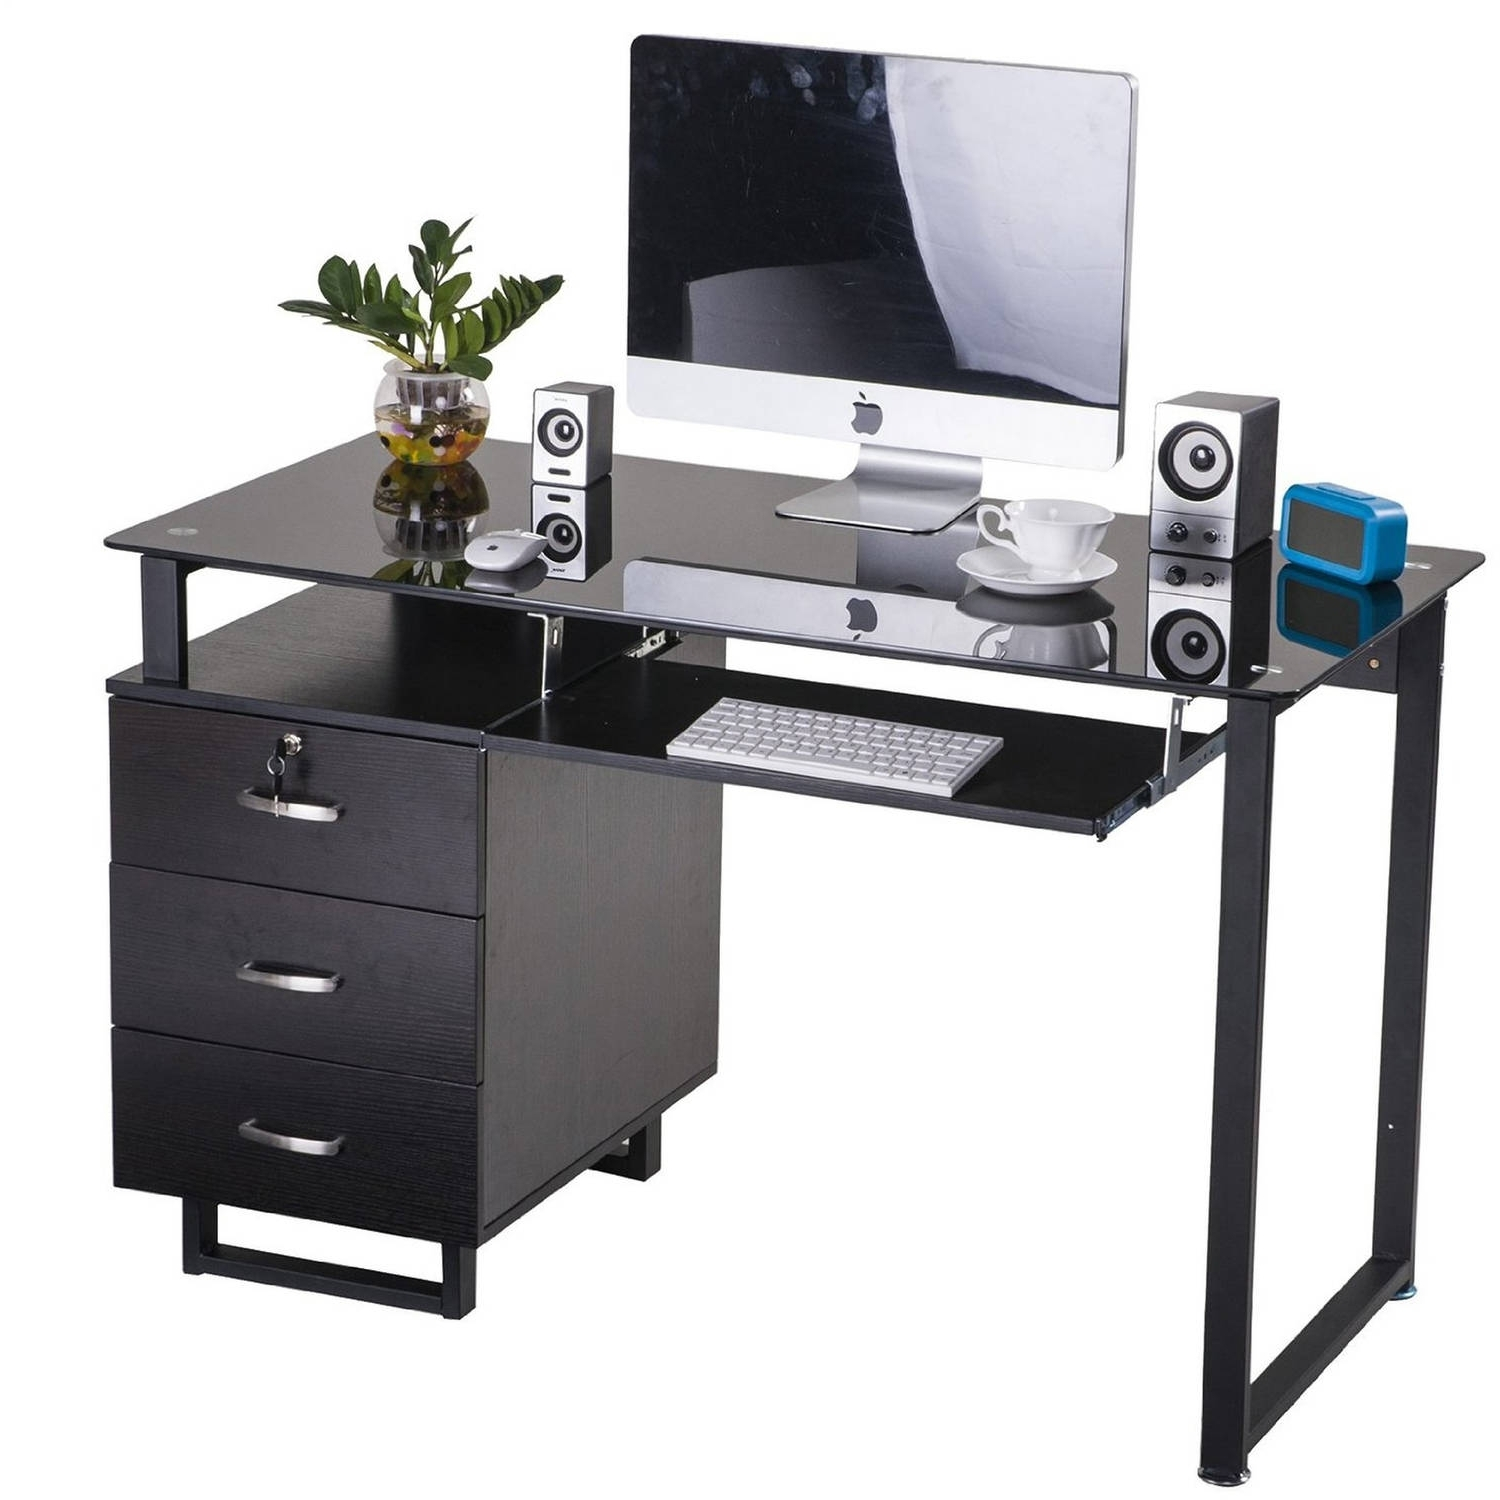 Merax Large Glass Computer Desk Office Desk With Keyboard Tray And Regarding Favorite Computer Desks With Keyboard Tray (View 11 of 20)